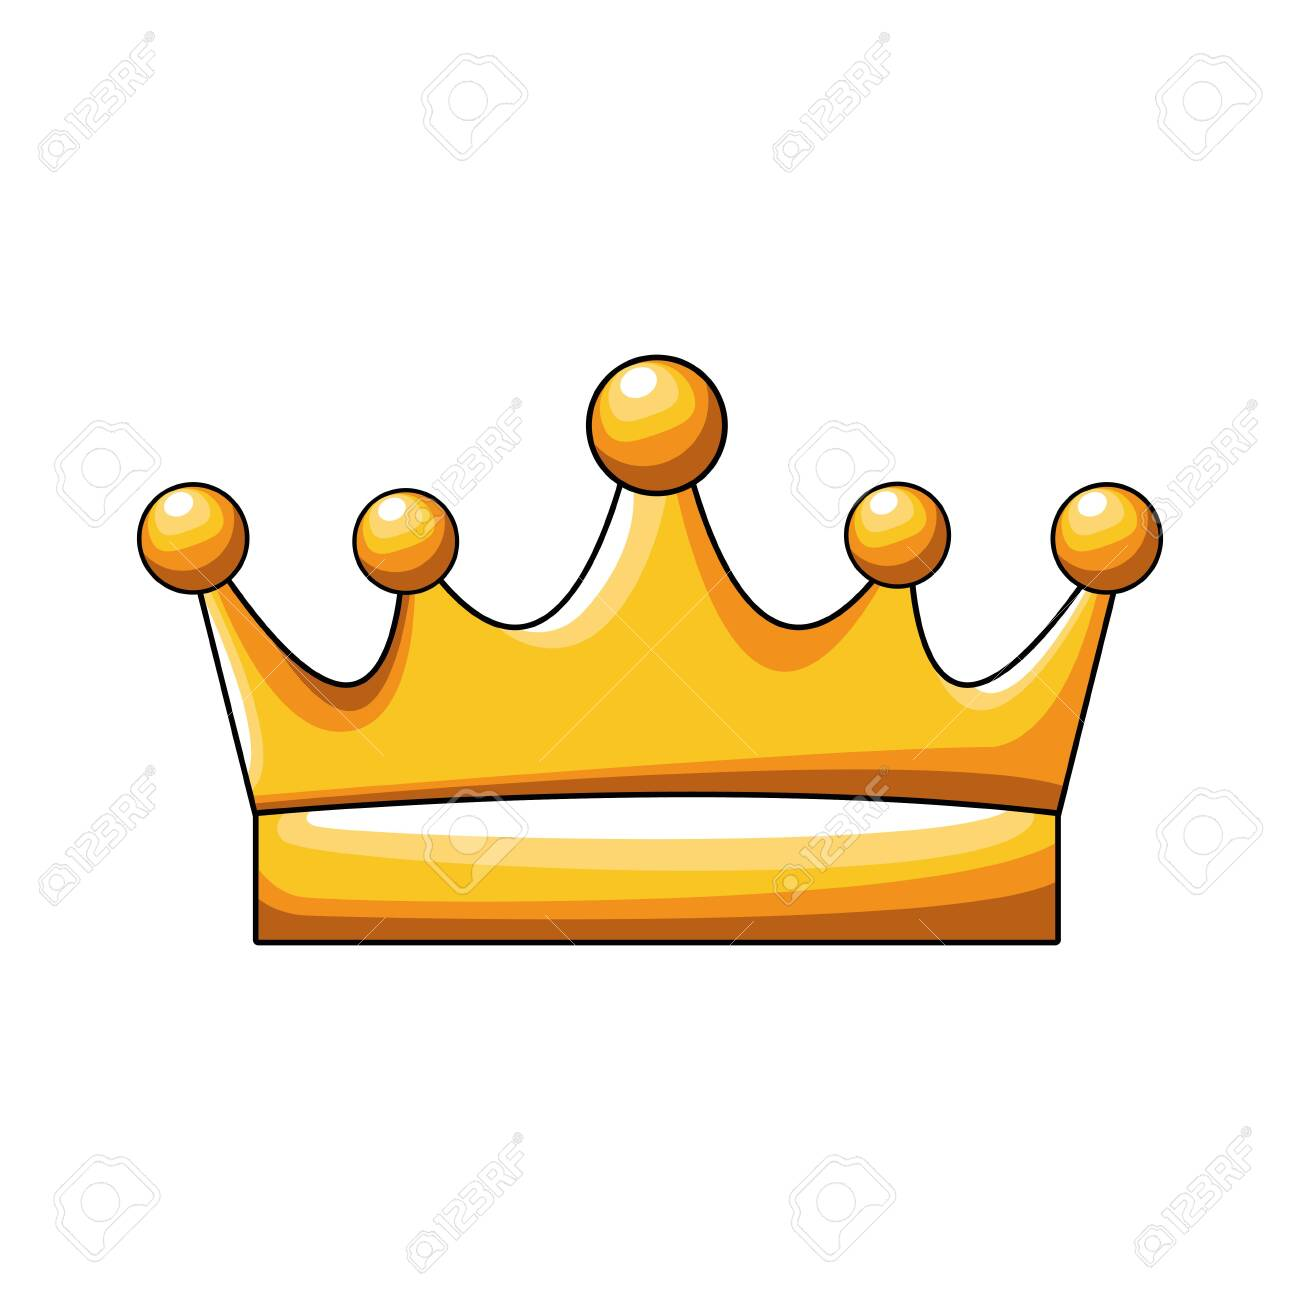 queen crown icon over white background, colorful design, vector illustration - 135388119